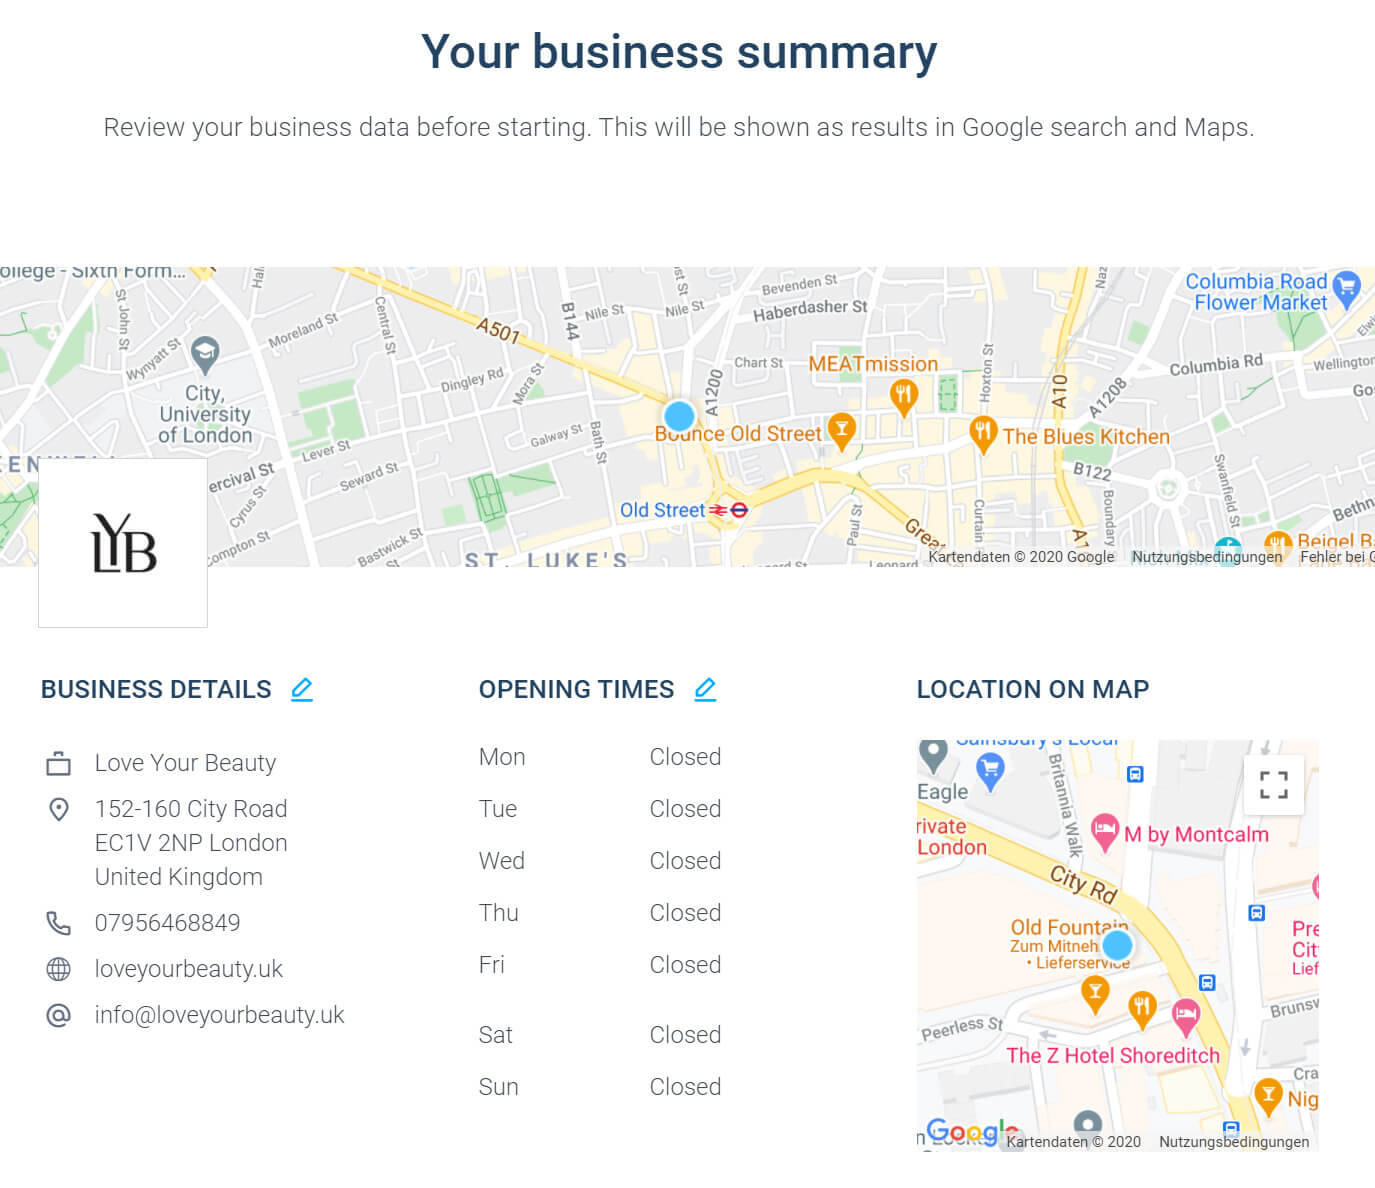 Review your business summary